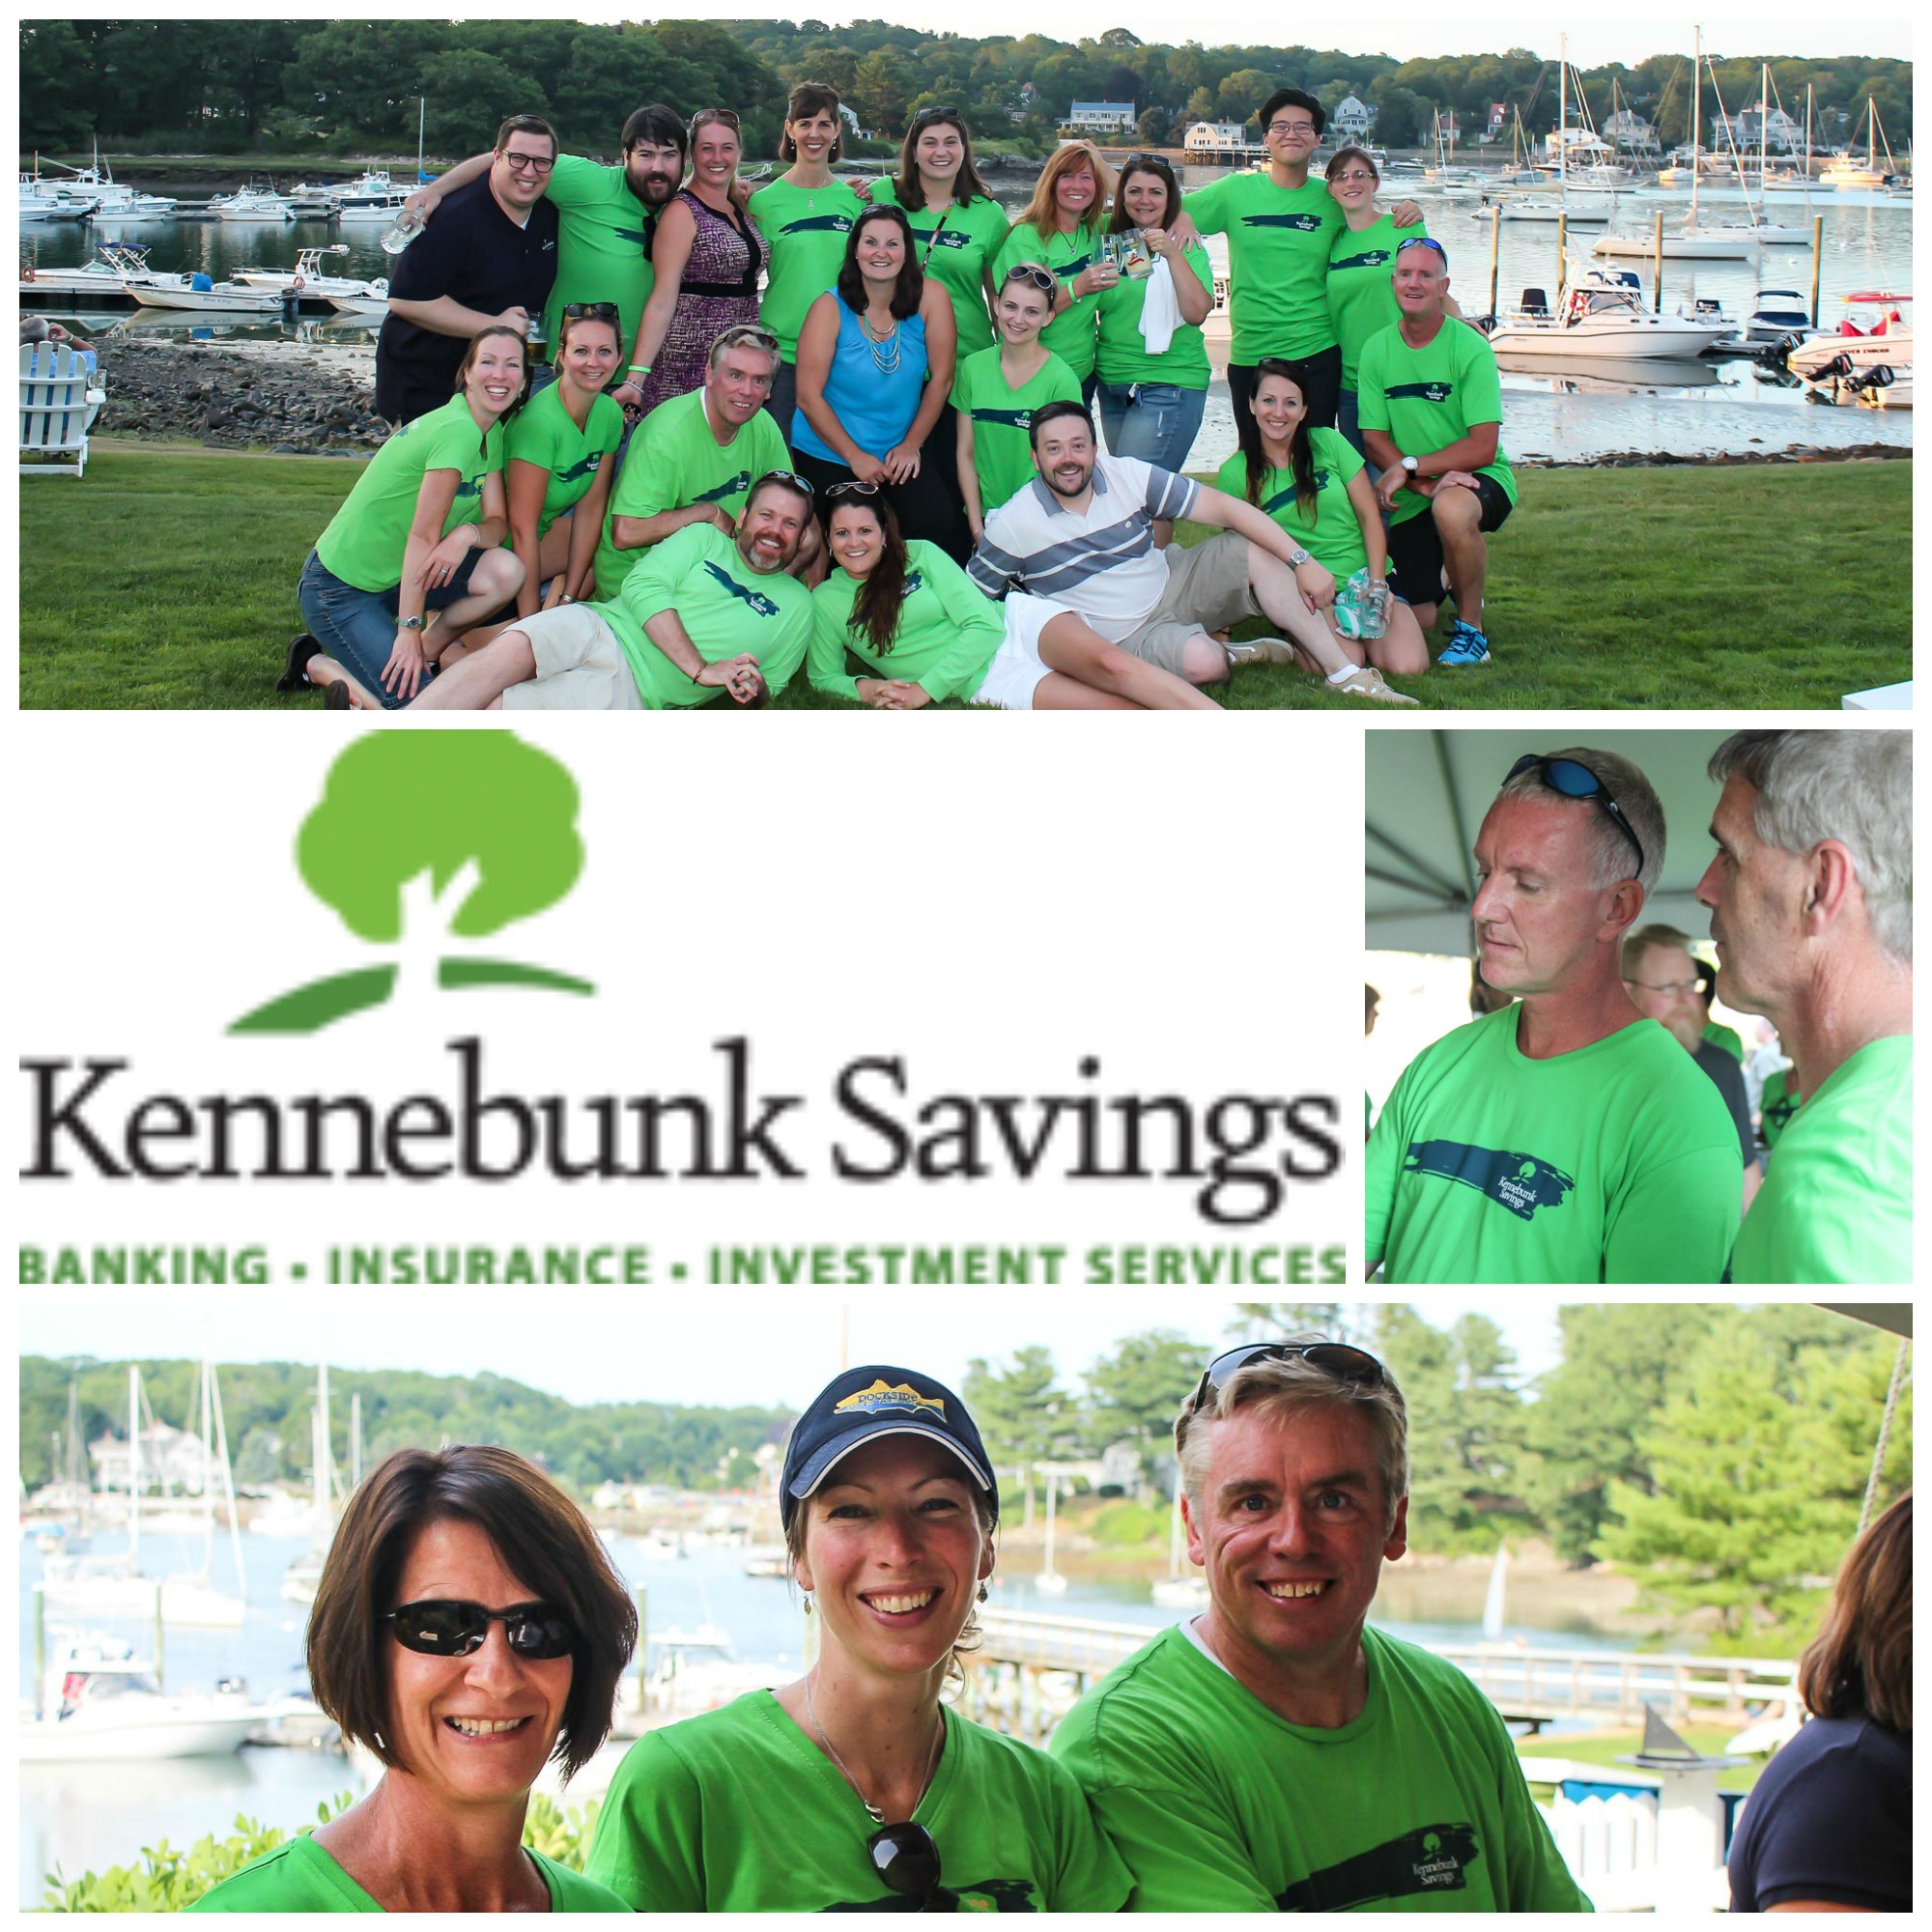 Kennebunk Savings .jpg